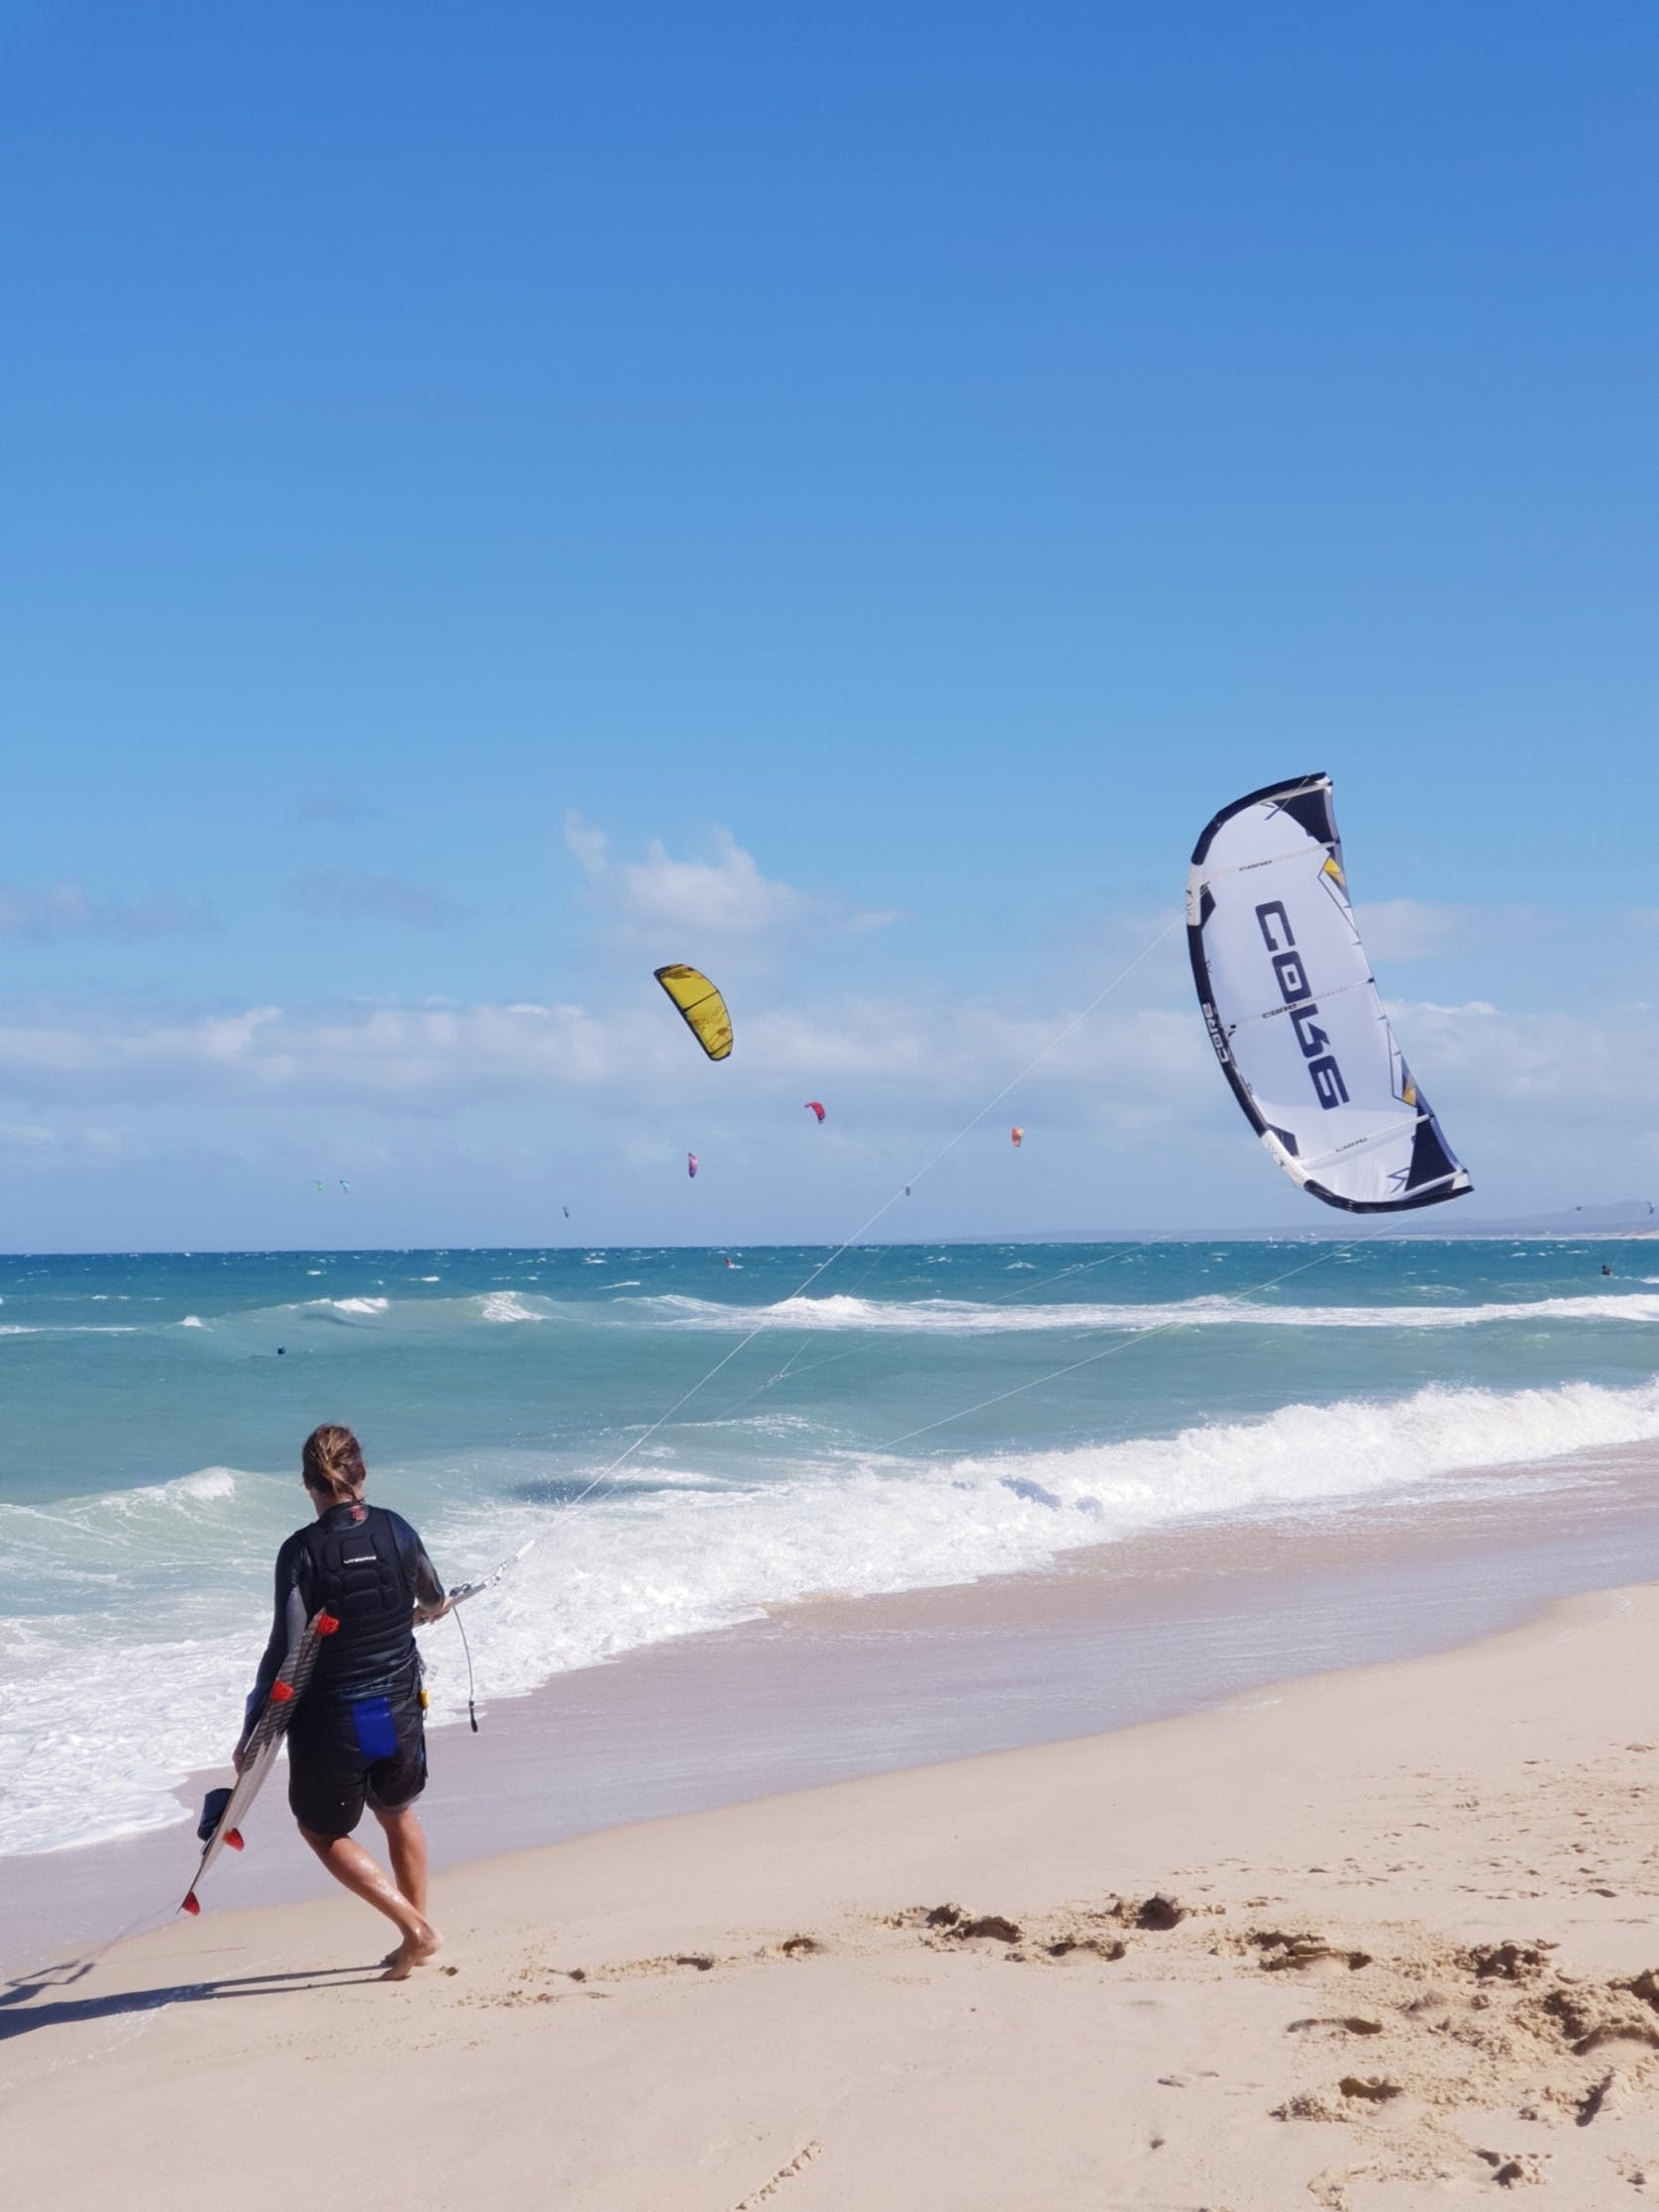 Are you an advanced rider - we offer kitesurfing lessons for every level